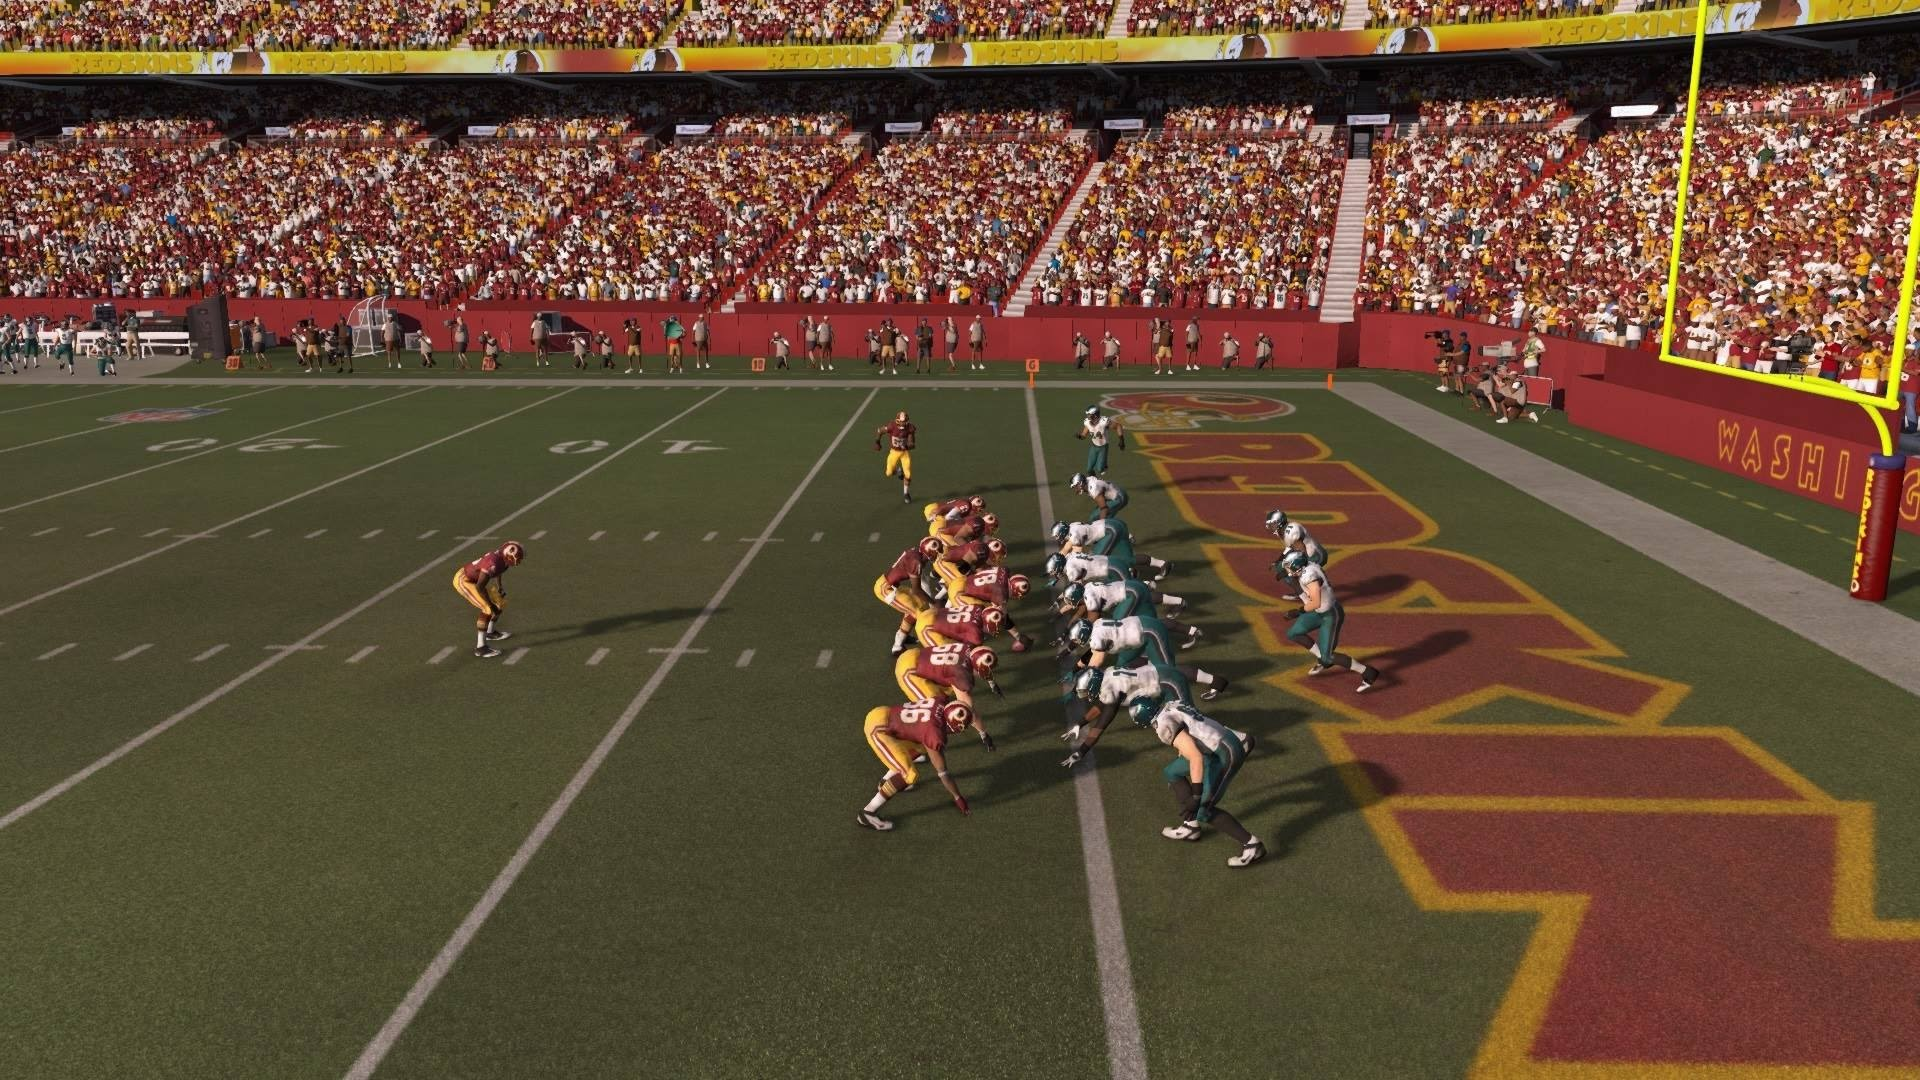 1920x1080 NFL 2014 Week 16 - Philadelphia Eagles vs Washington Redskins - 2nd Half -  Madden 15 PS4 - HD